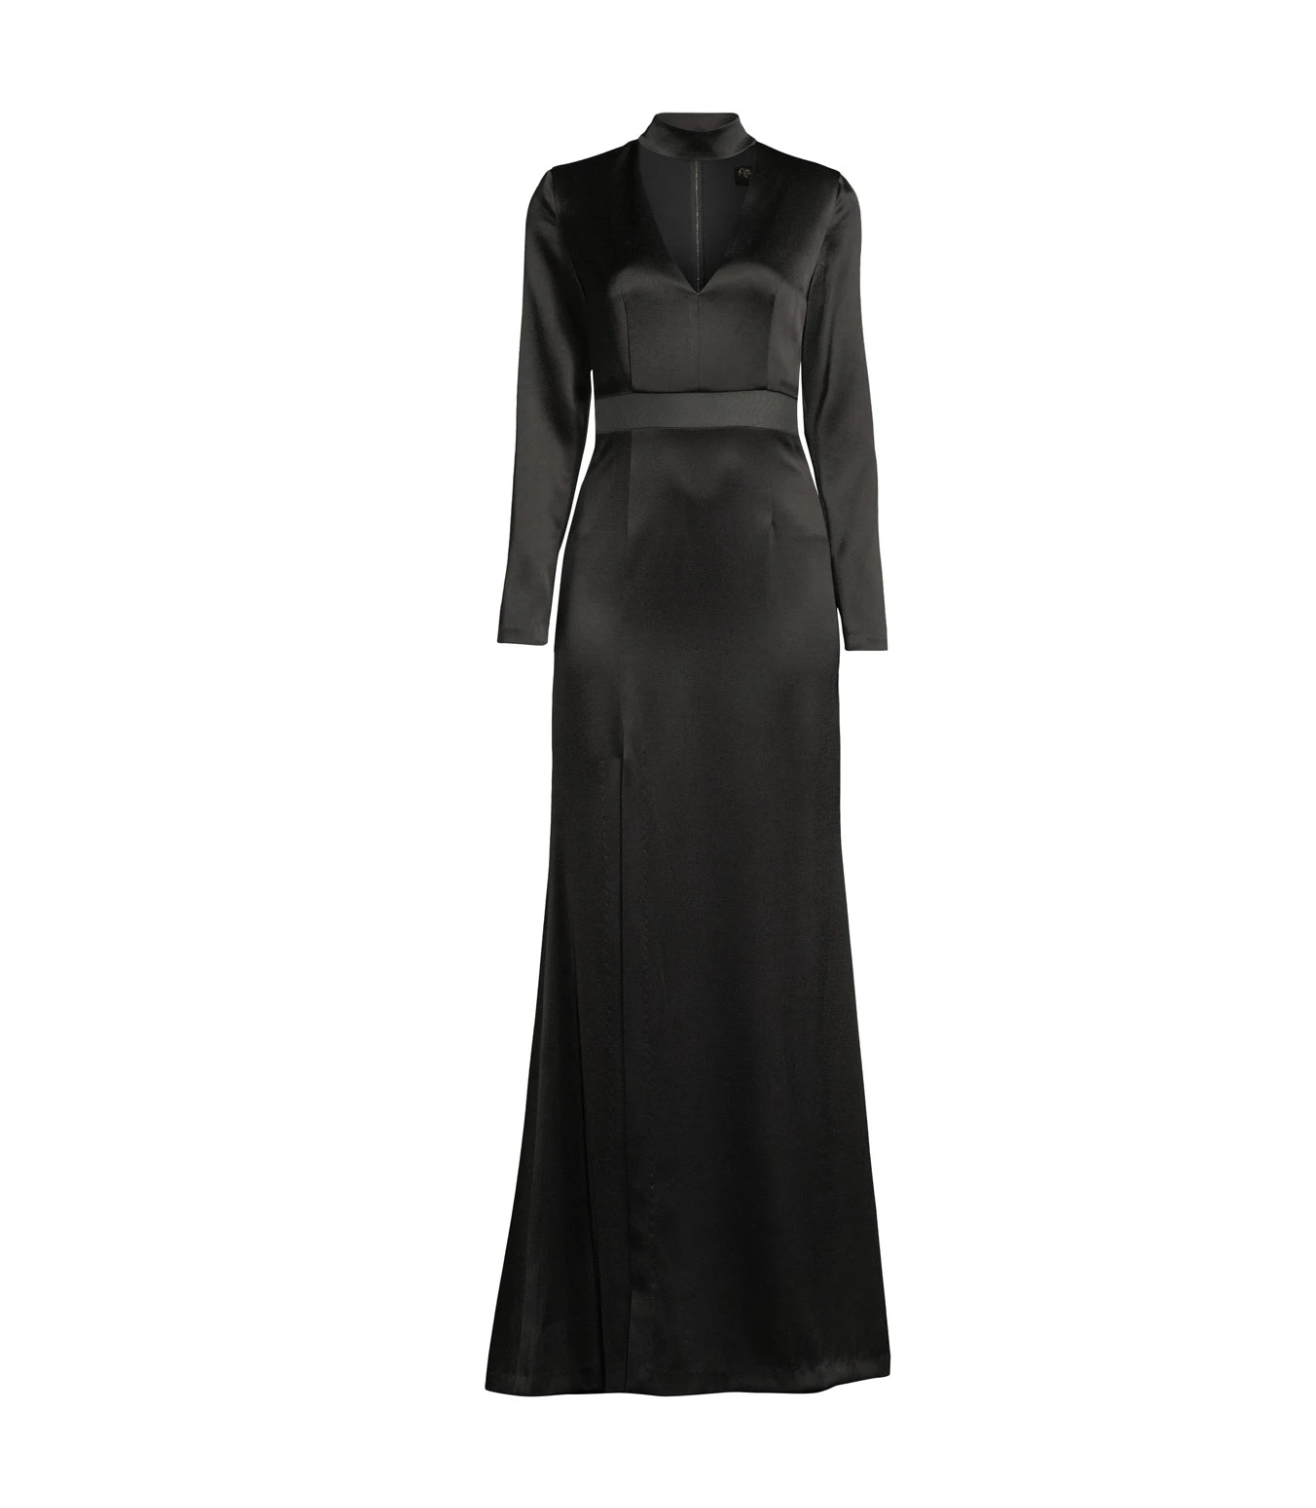 Alice + Olivia Arial Strong Shoulder Gown, $349